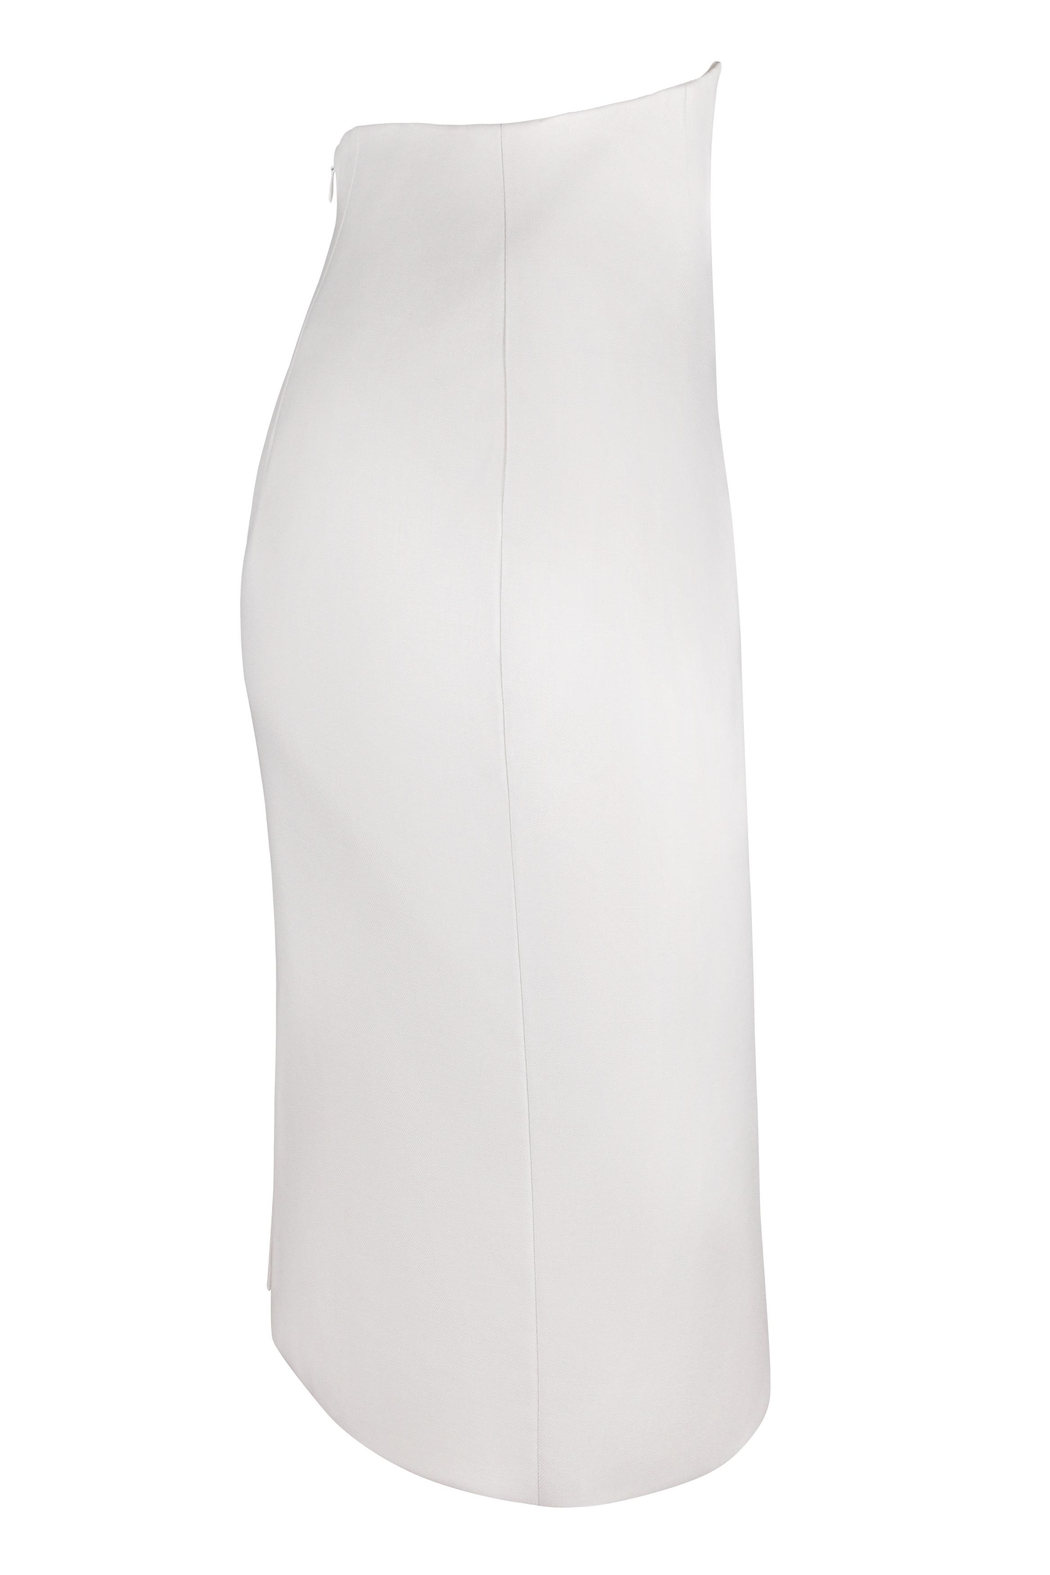 Yona New York Tori Notch Pencil Skirt / Off White - Front Full Image